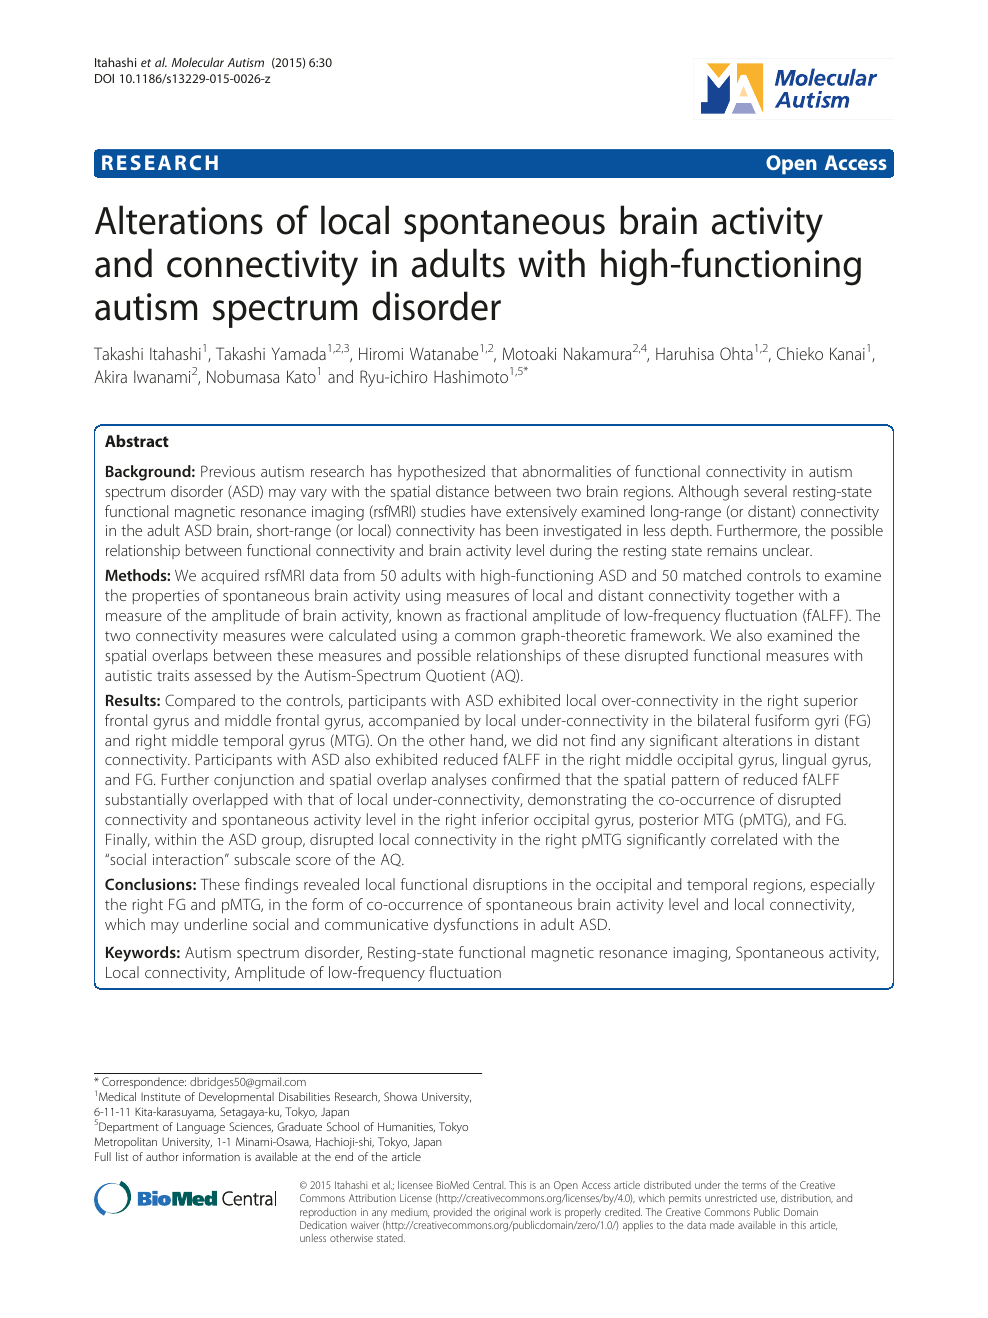 Alterations of local spontaneous brain activity and